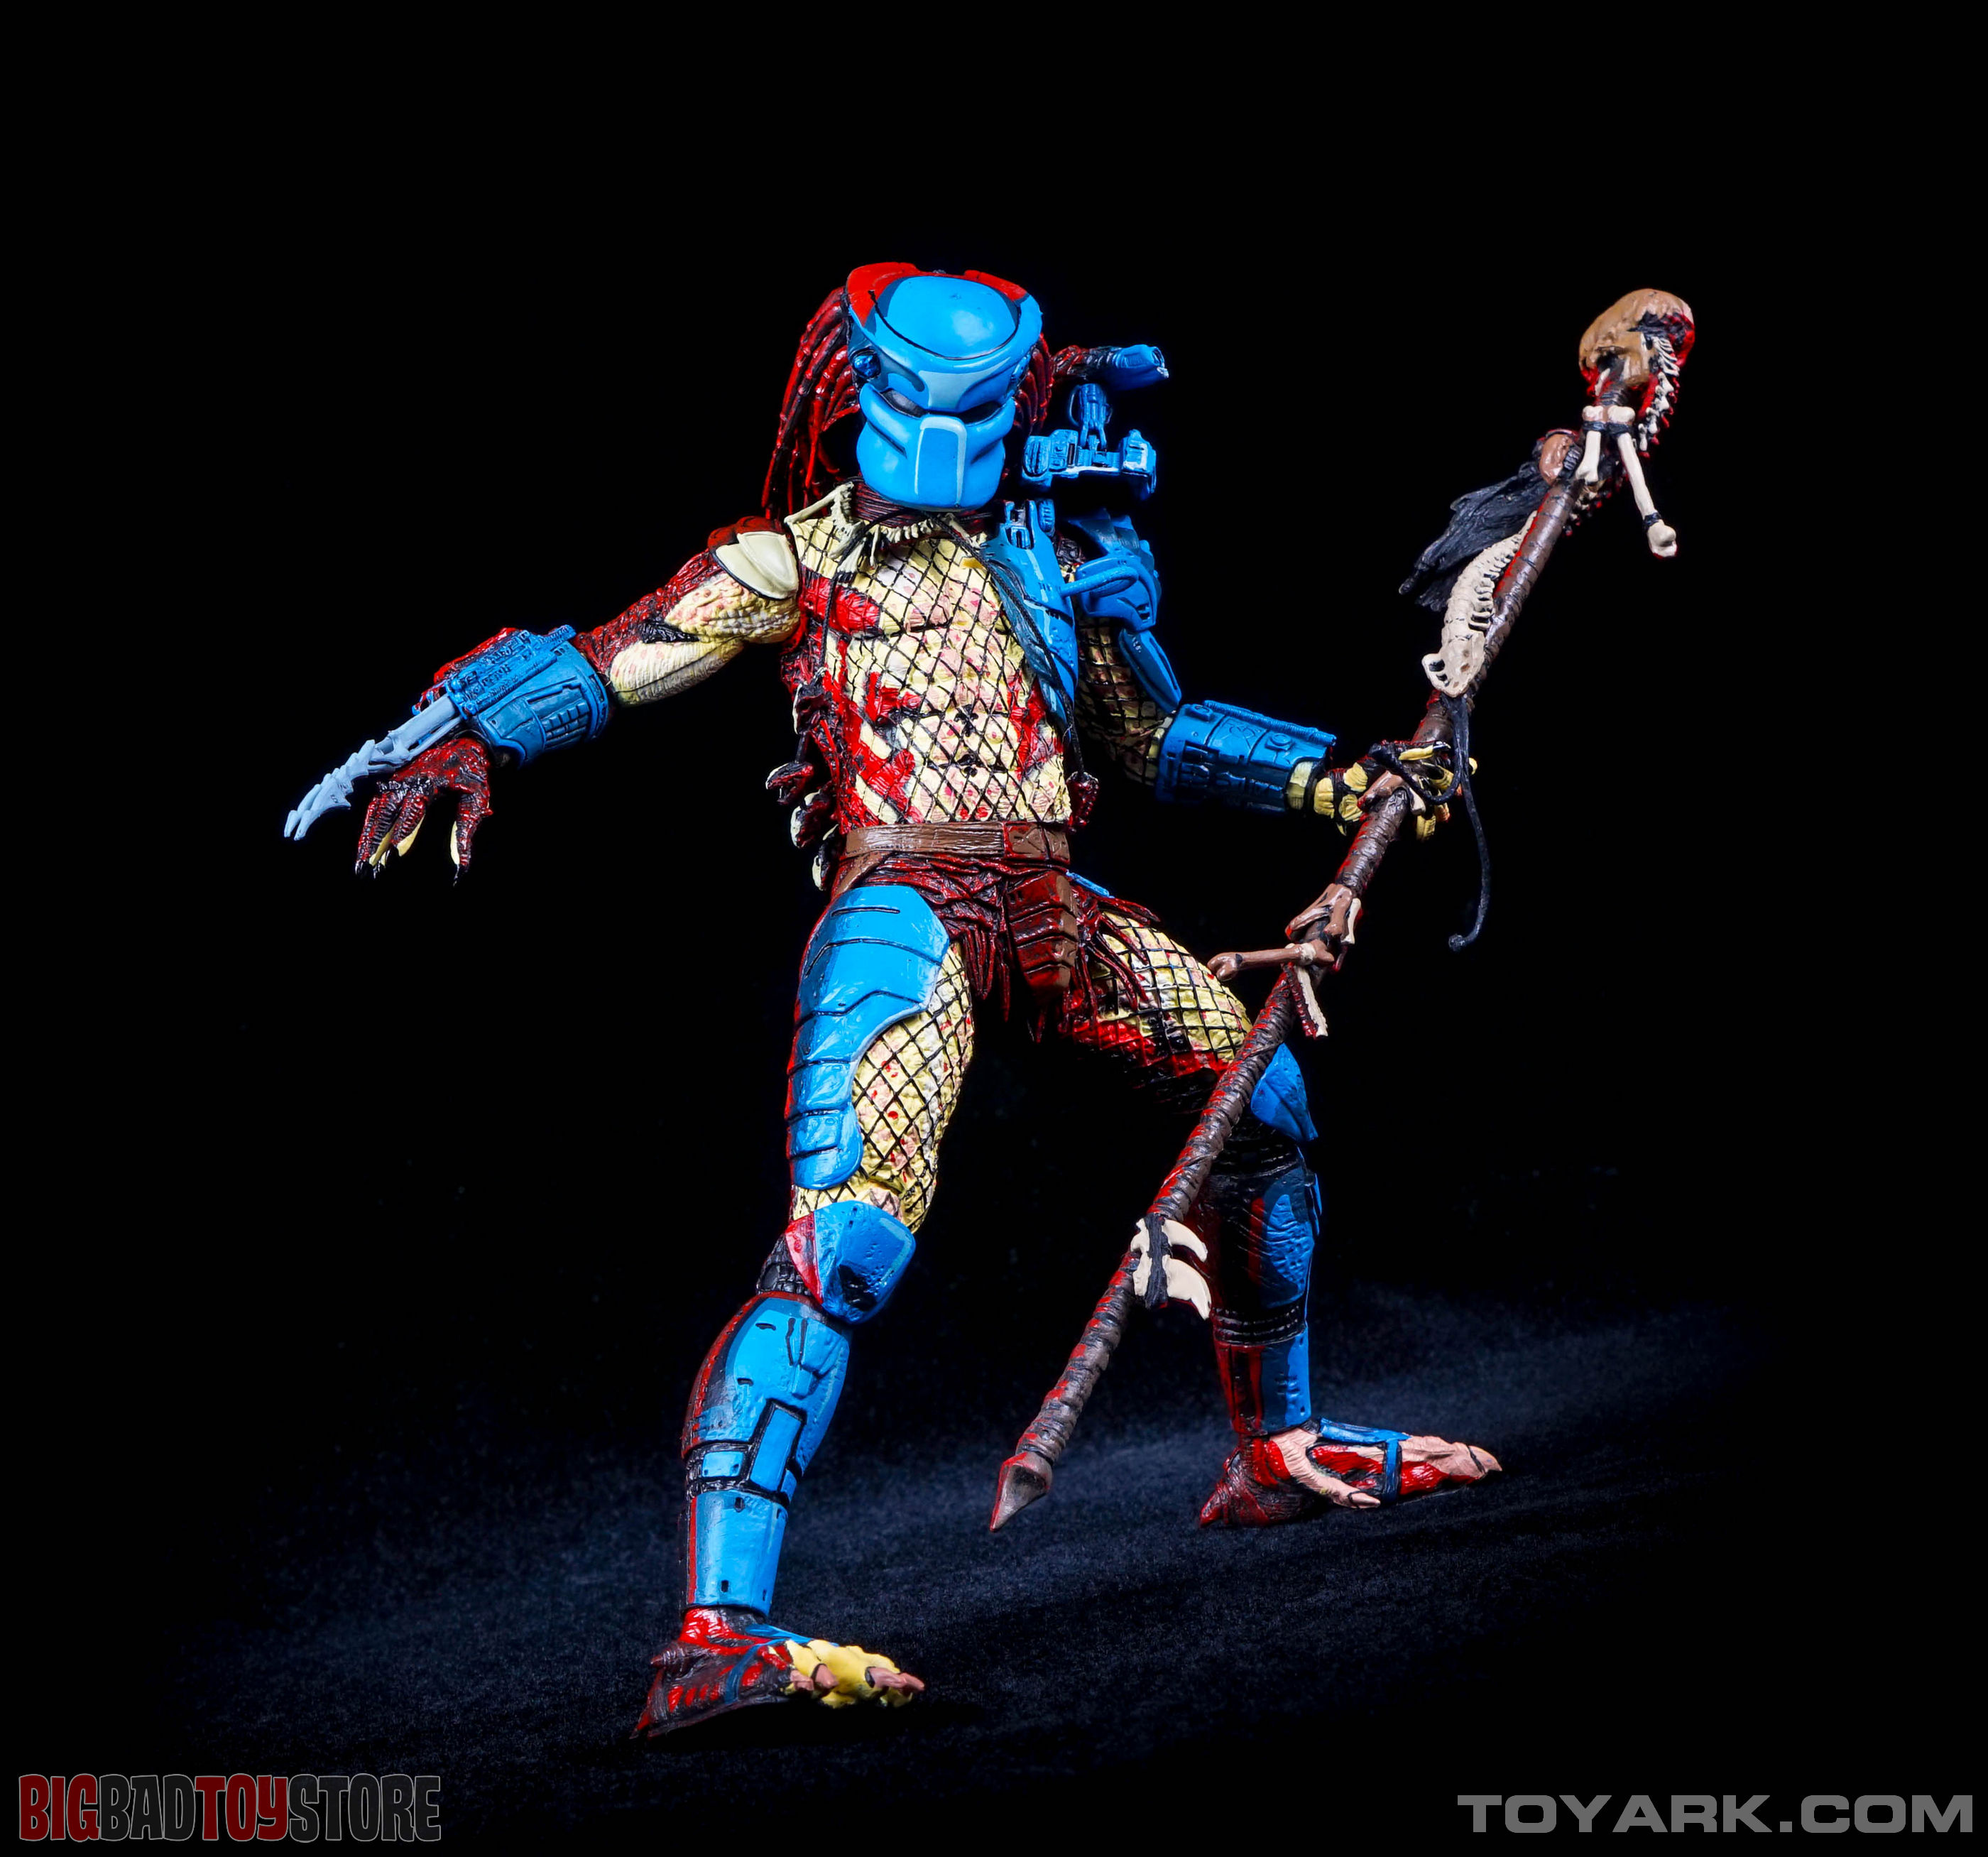 http://news.toyark.com/wp-content/uploads/sites/4/2015/07/NECA-Dark-Horse-Predator-037.jpg